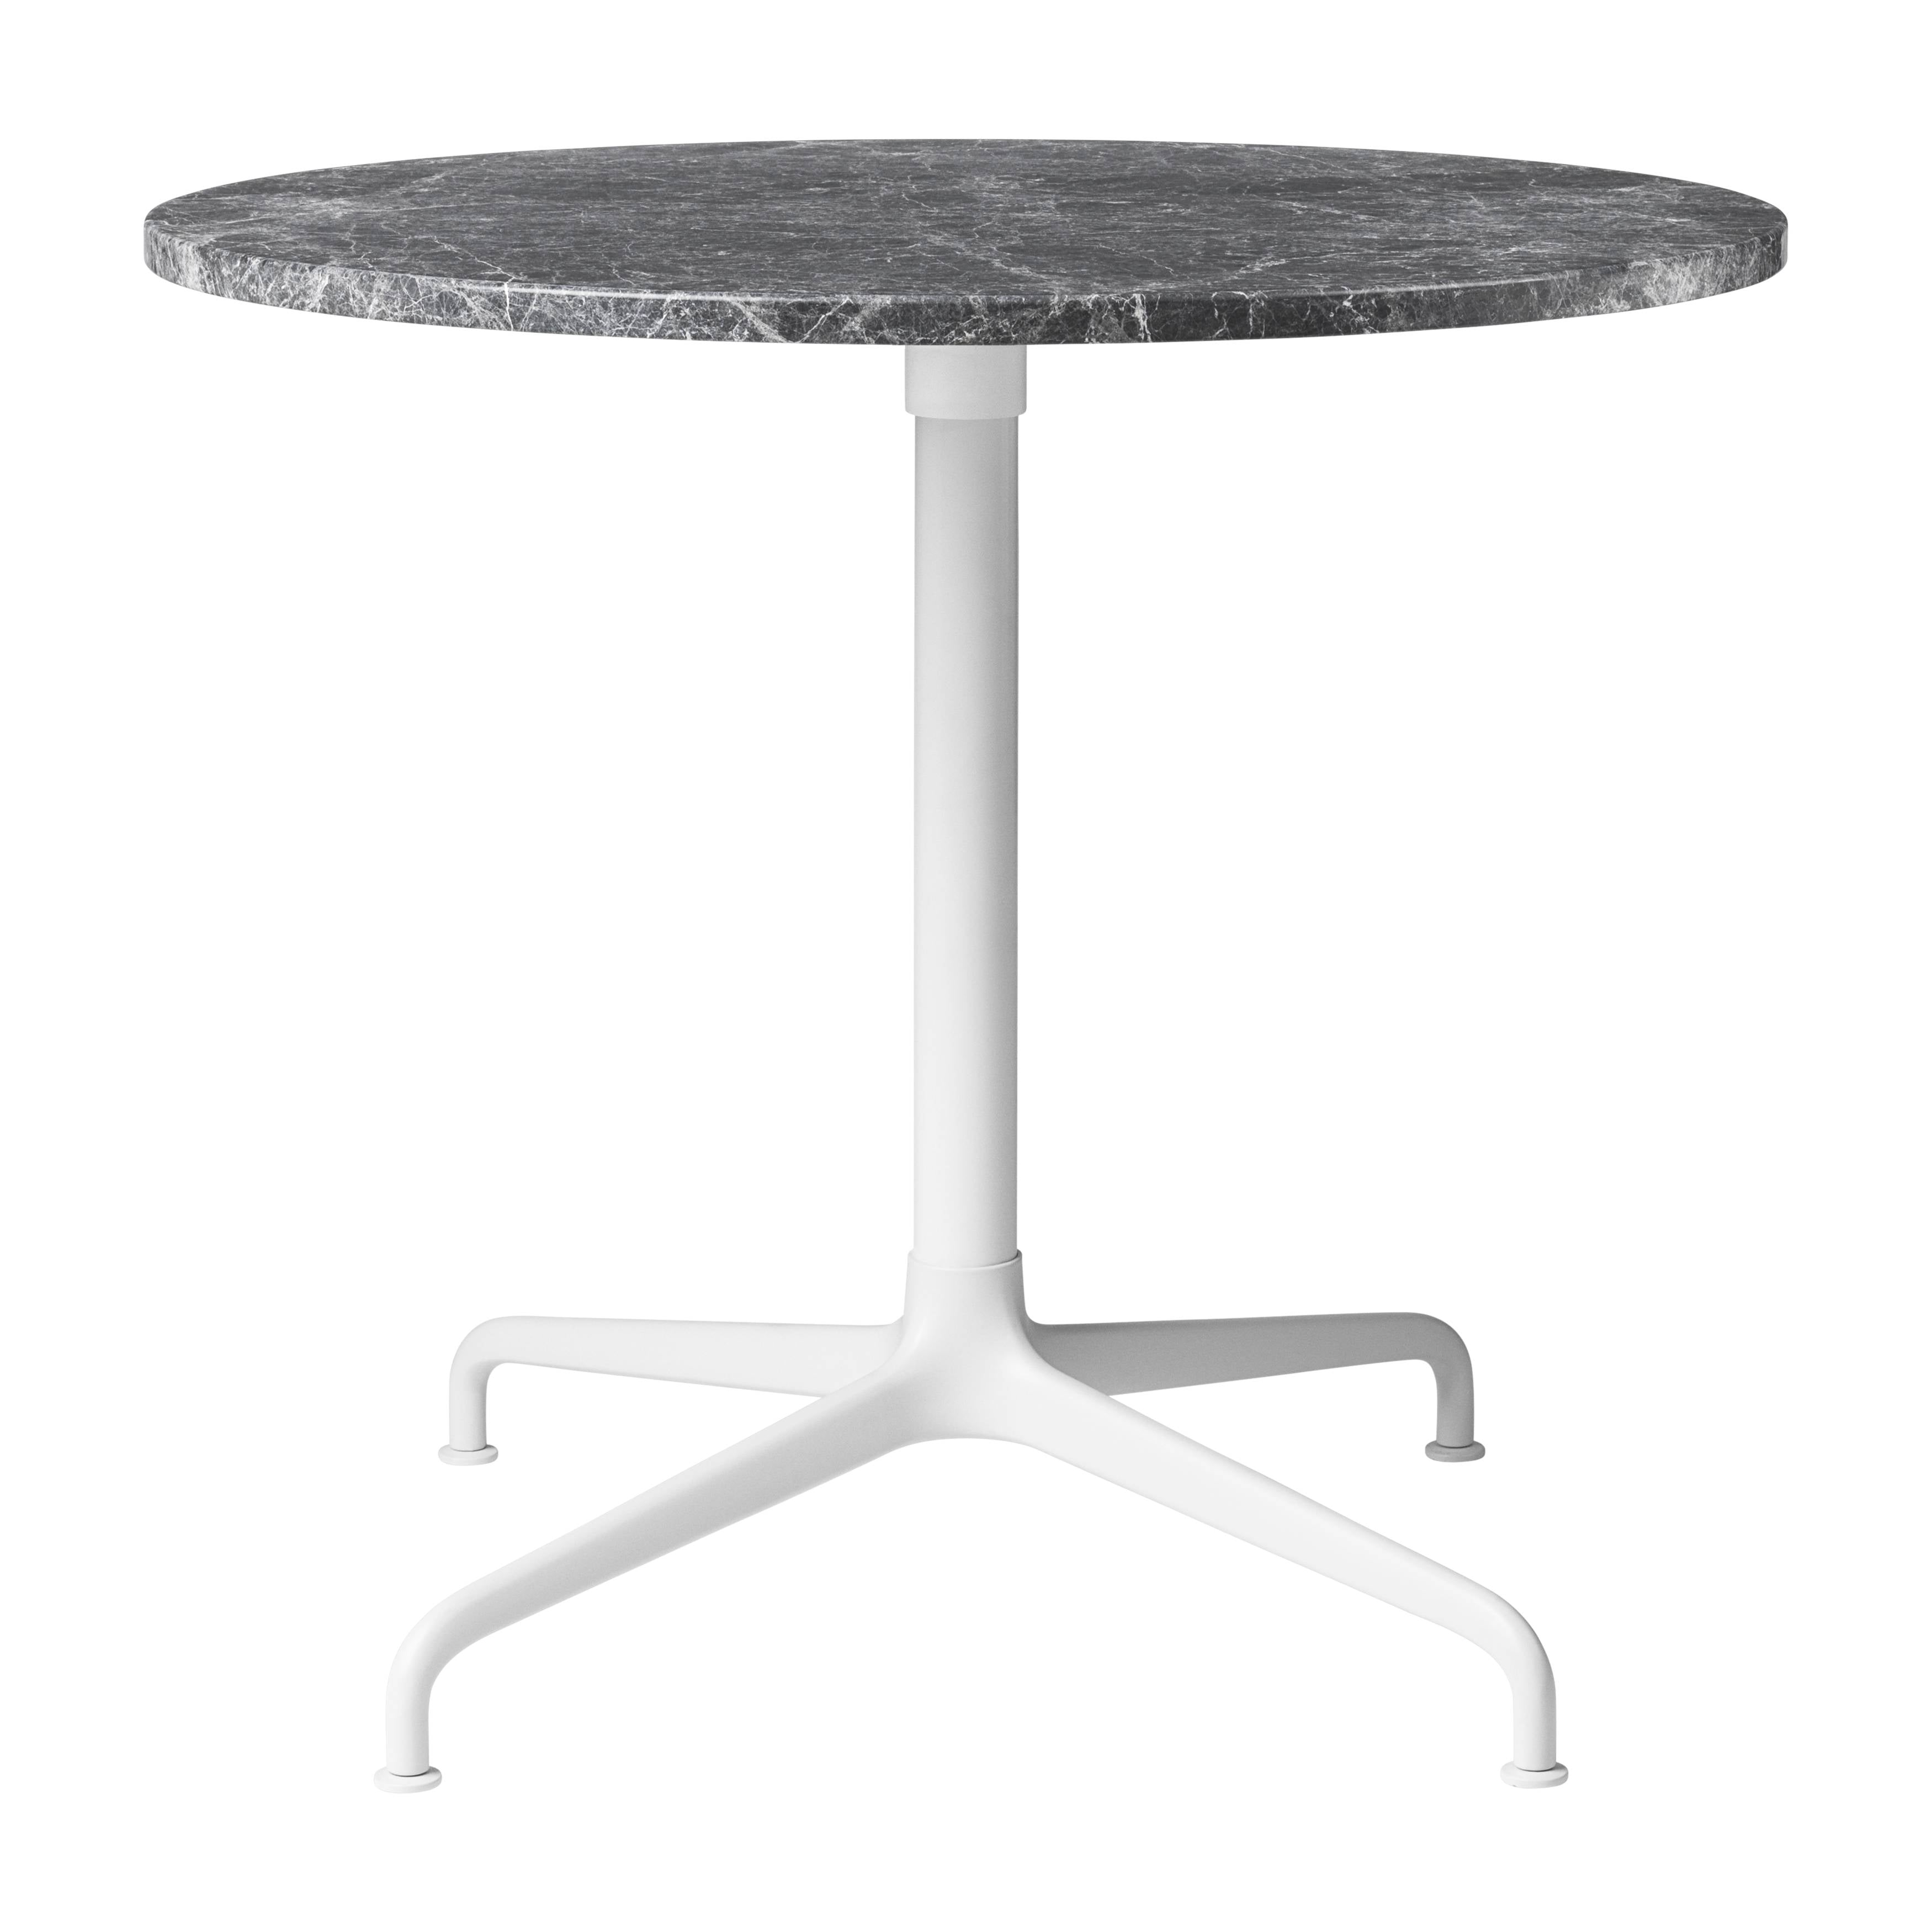 Beetle Lounge Table: Round + Small + Grey Emperador Marble + Soft White Semi-Matte Base